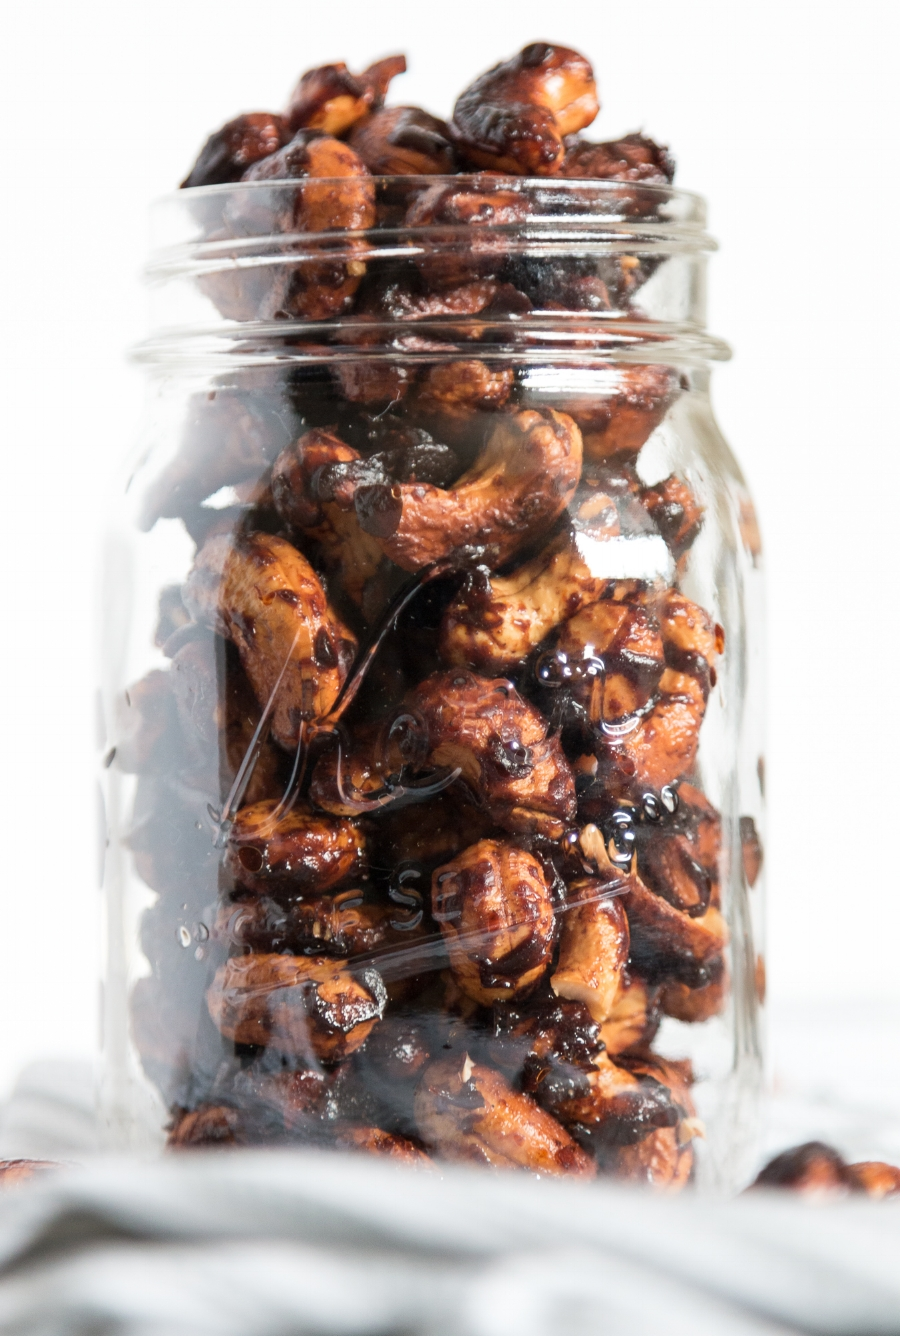 Get your snack on during the holidays with these Candied Cashews